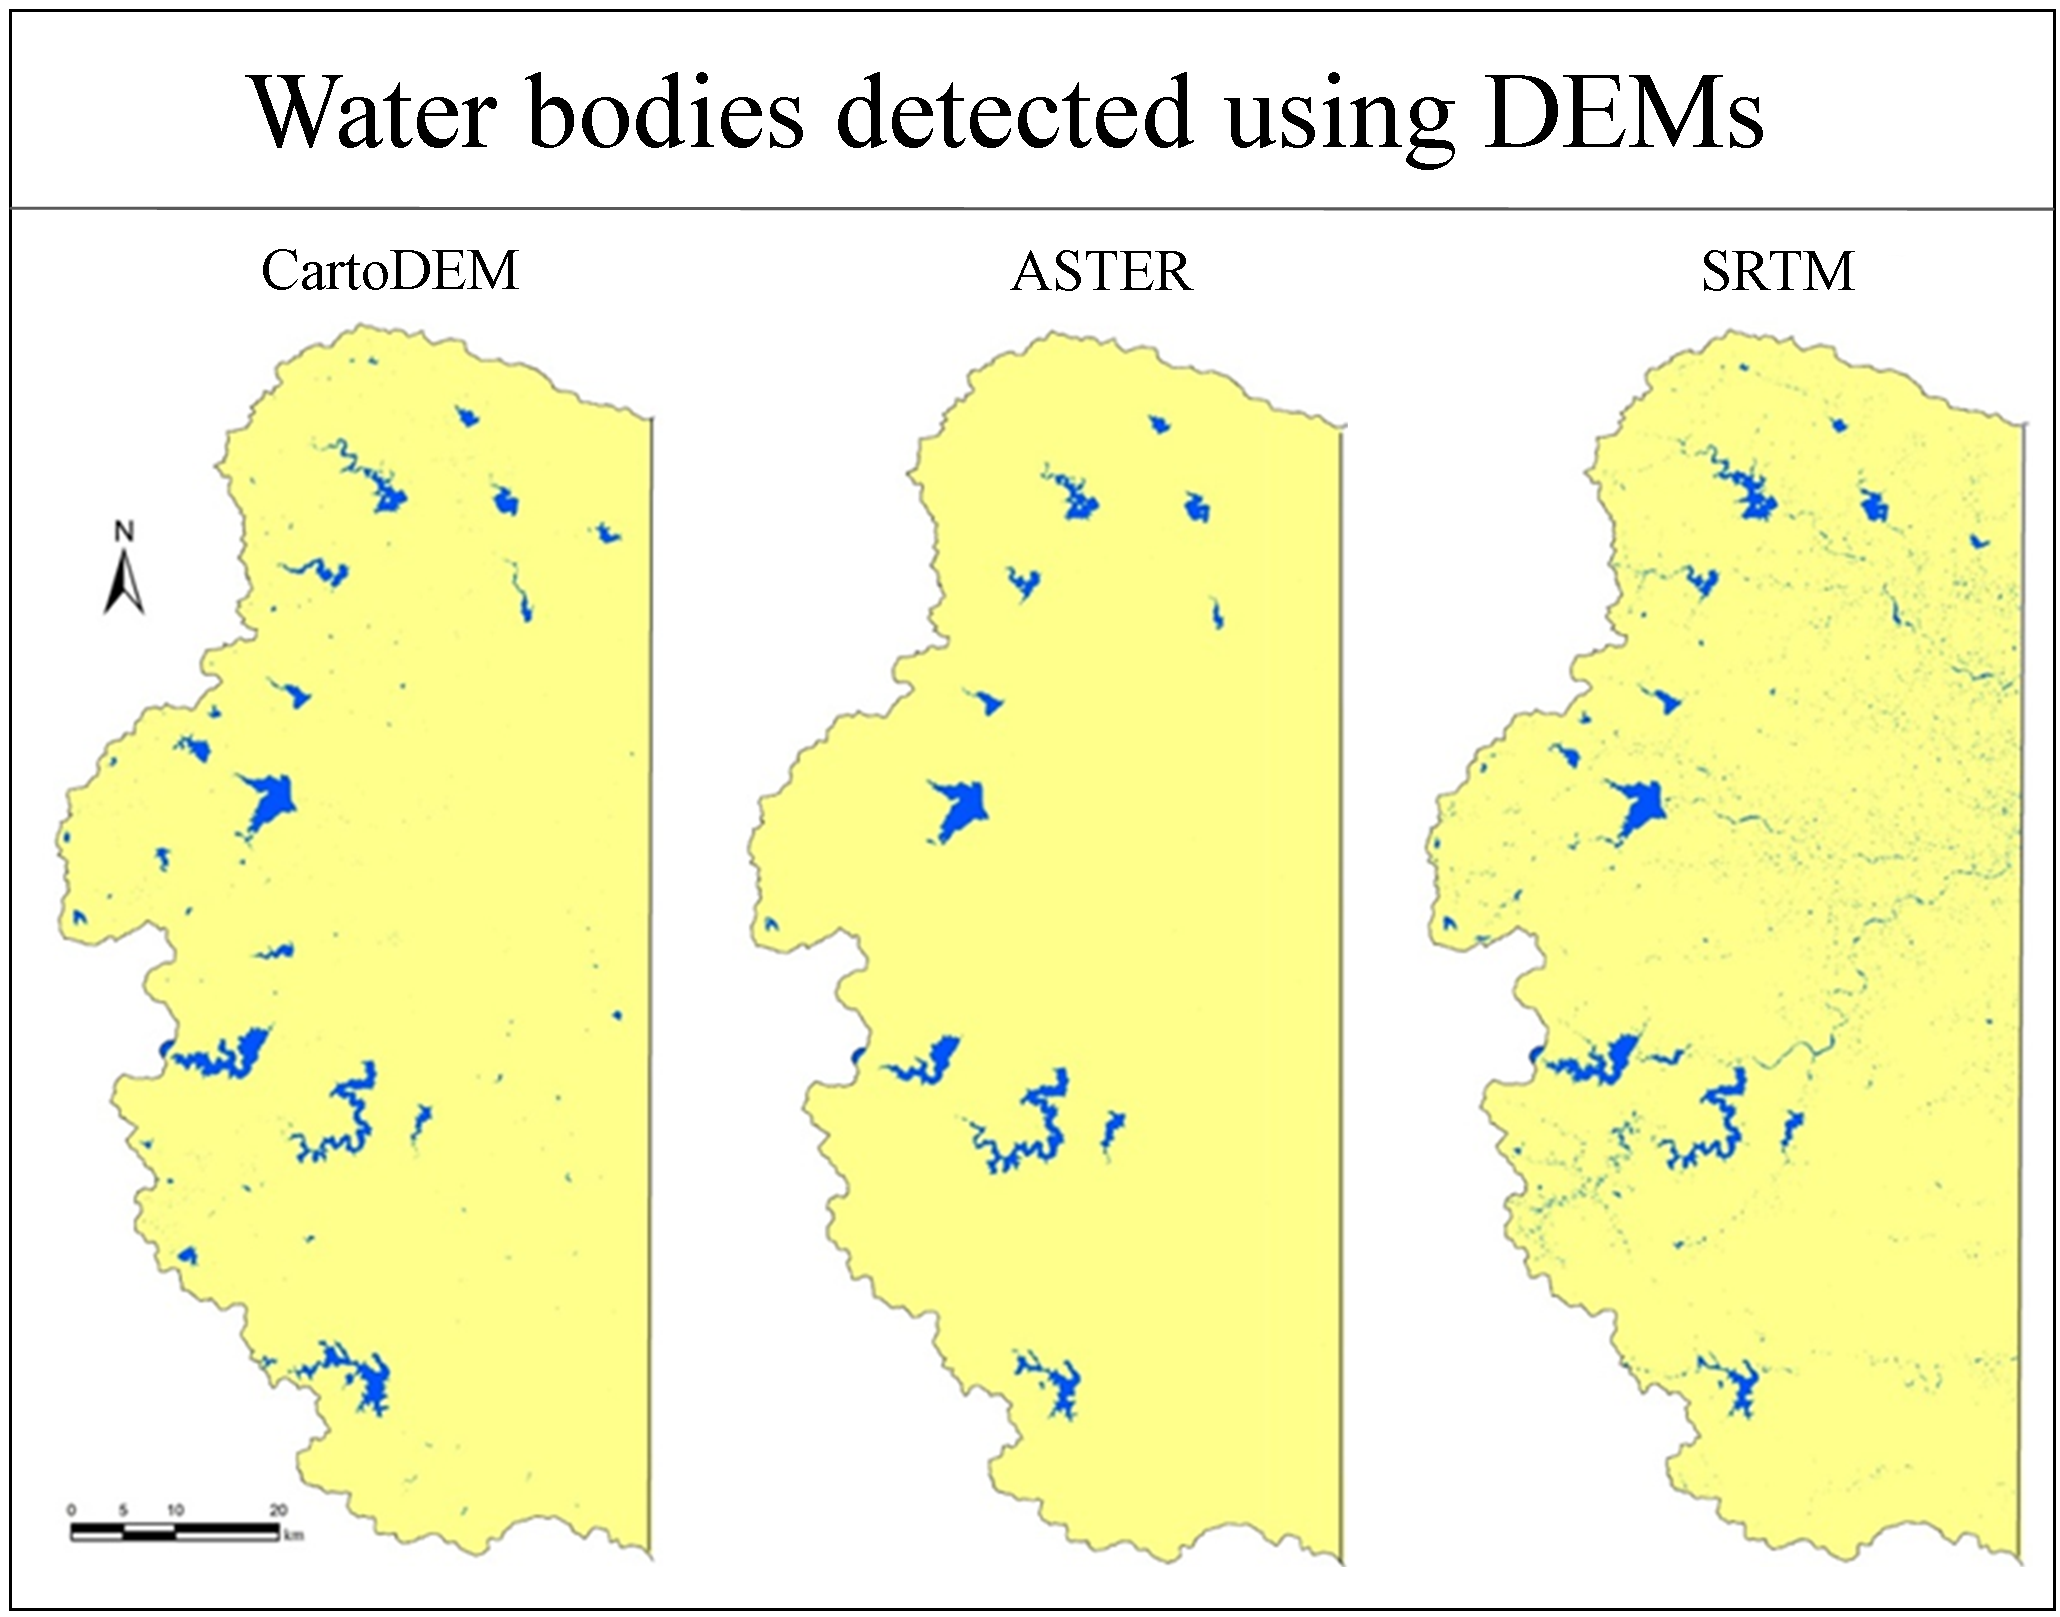 Detection and Delineation of Water Bodies in Hilly Region using CartoDEM SRTM and ASTER GDEM Data